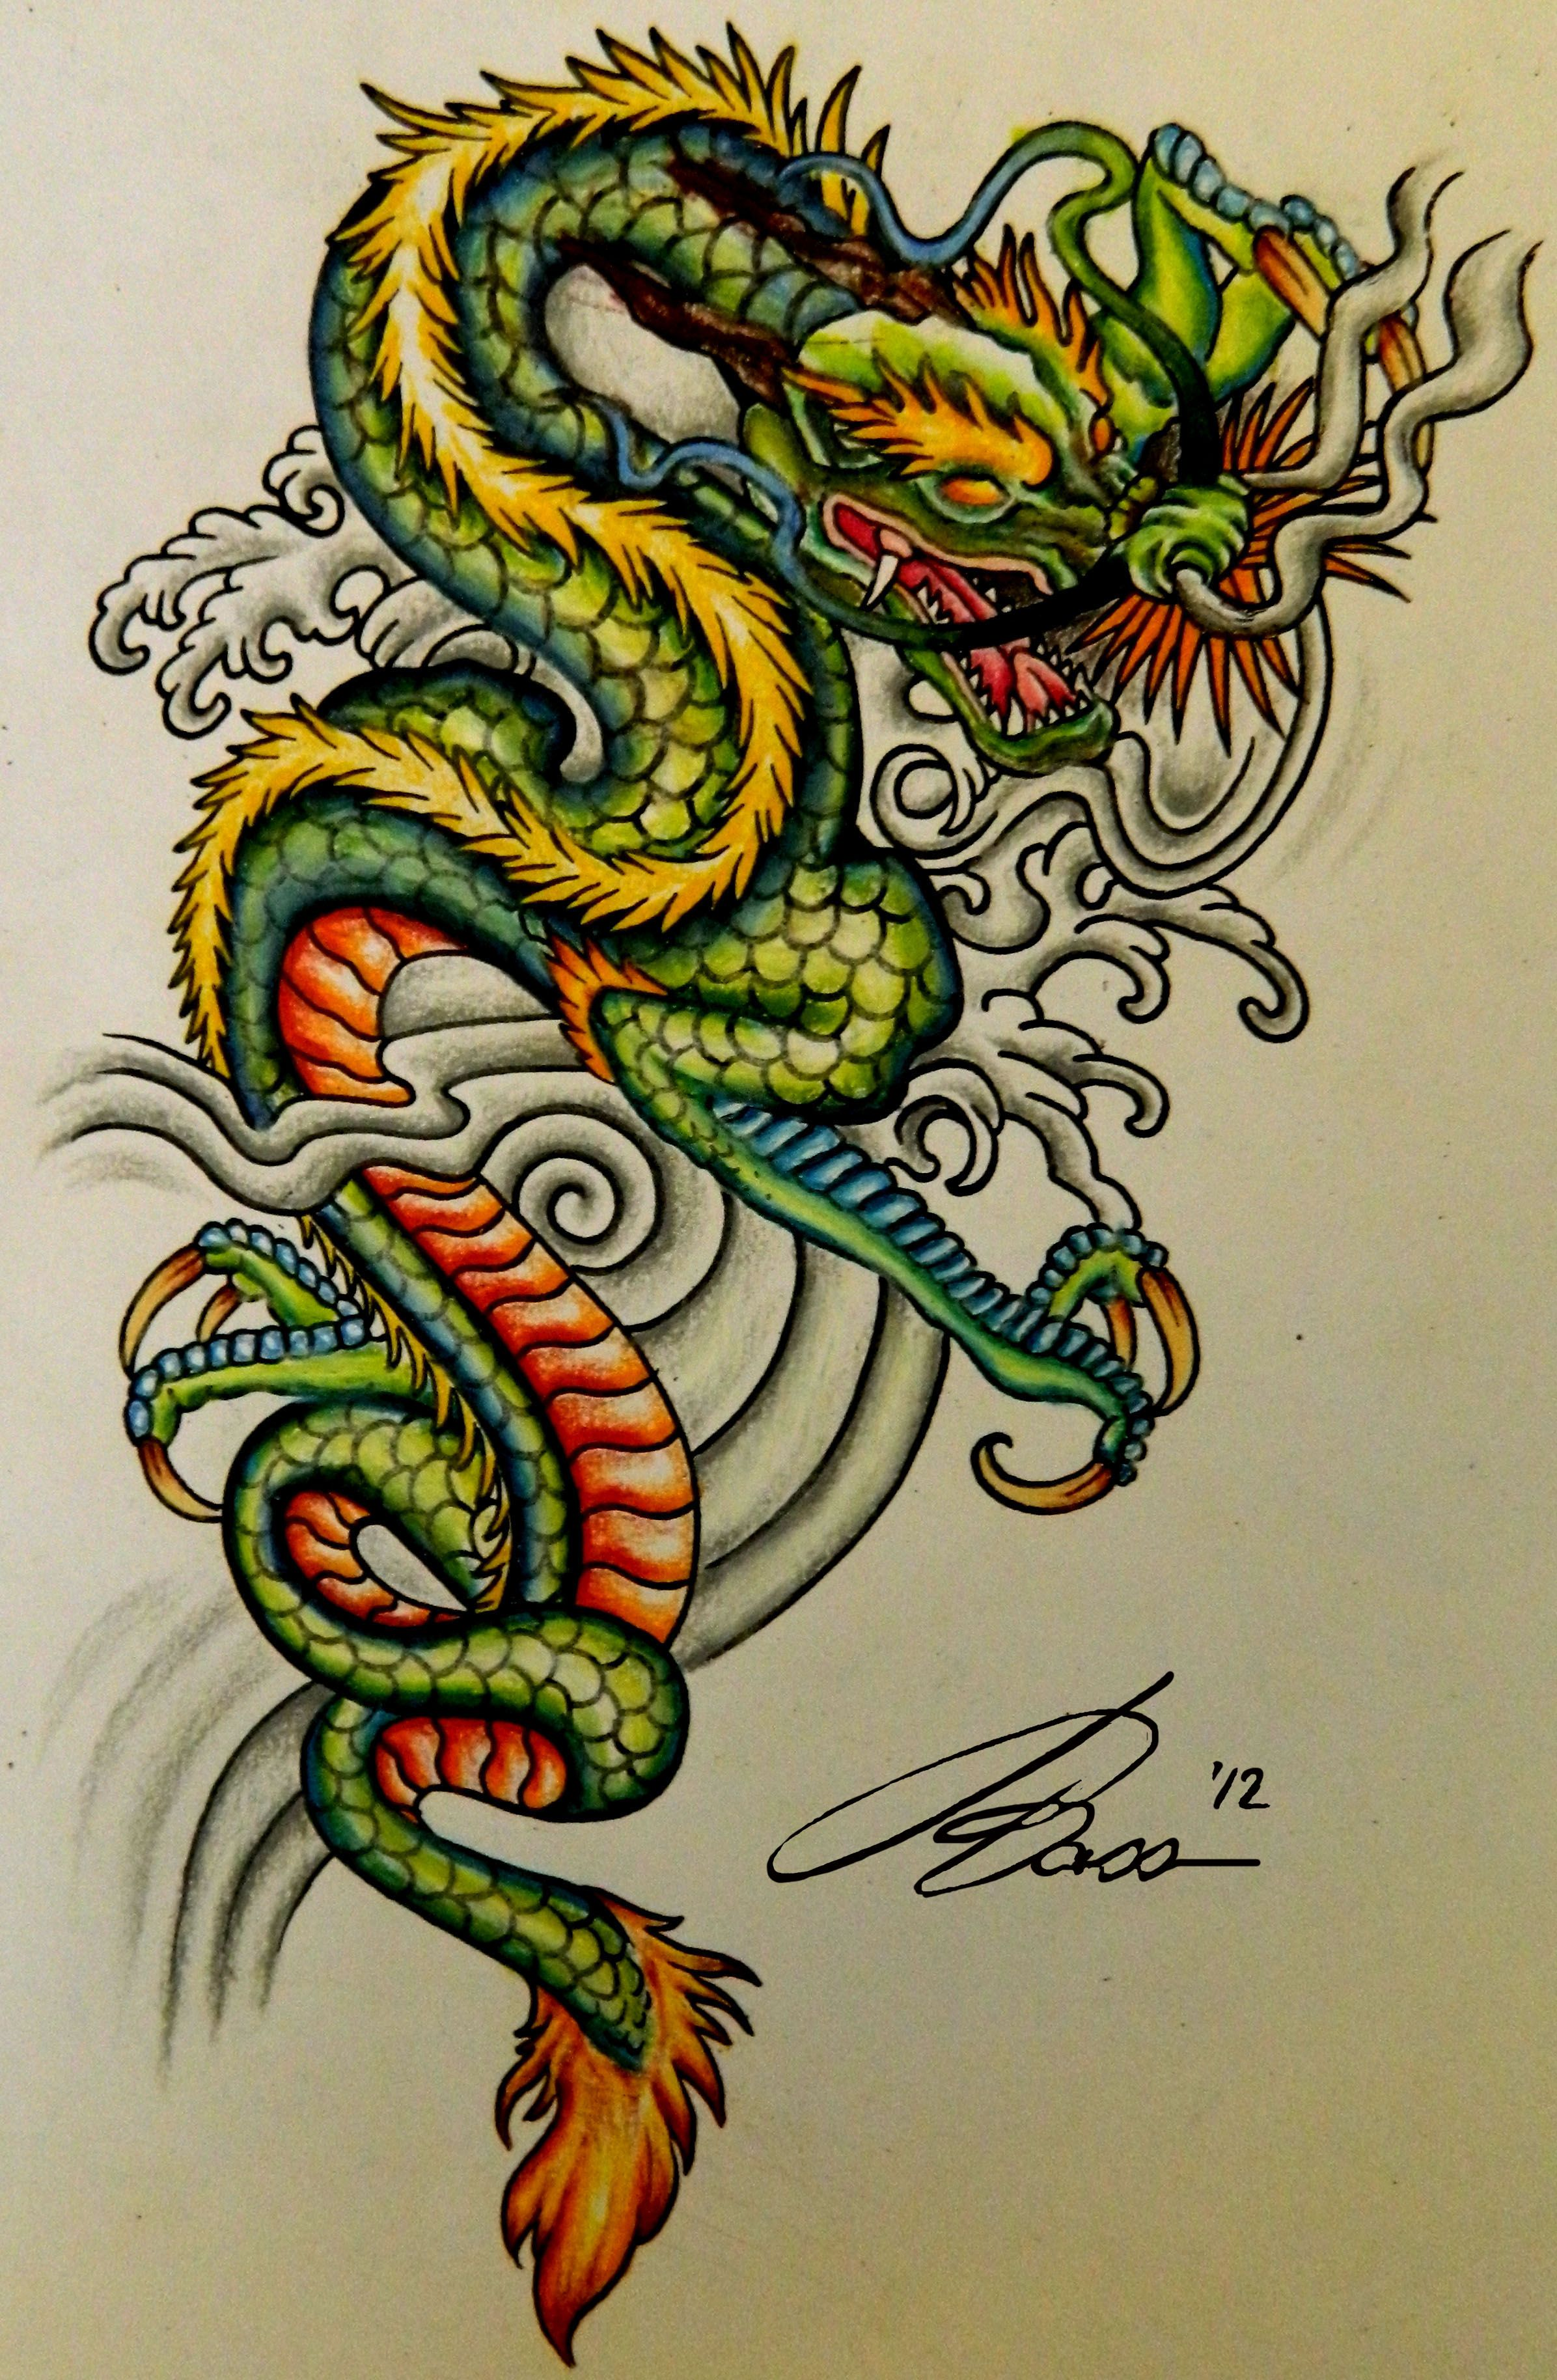 Dragon Drawing Color : dragon, drawing, color, Angie, Dragons, Dragon, Tattoo, Designs,, Colour,, Chinese, Tattoos